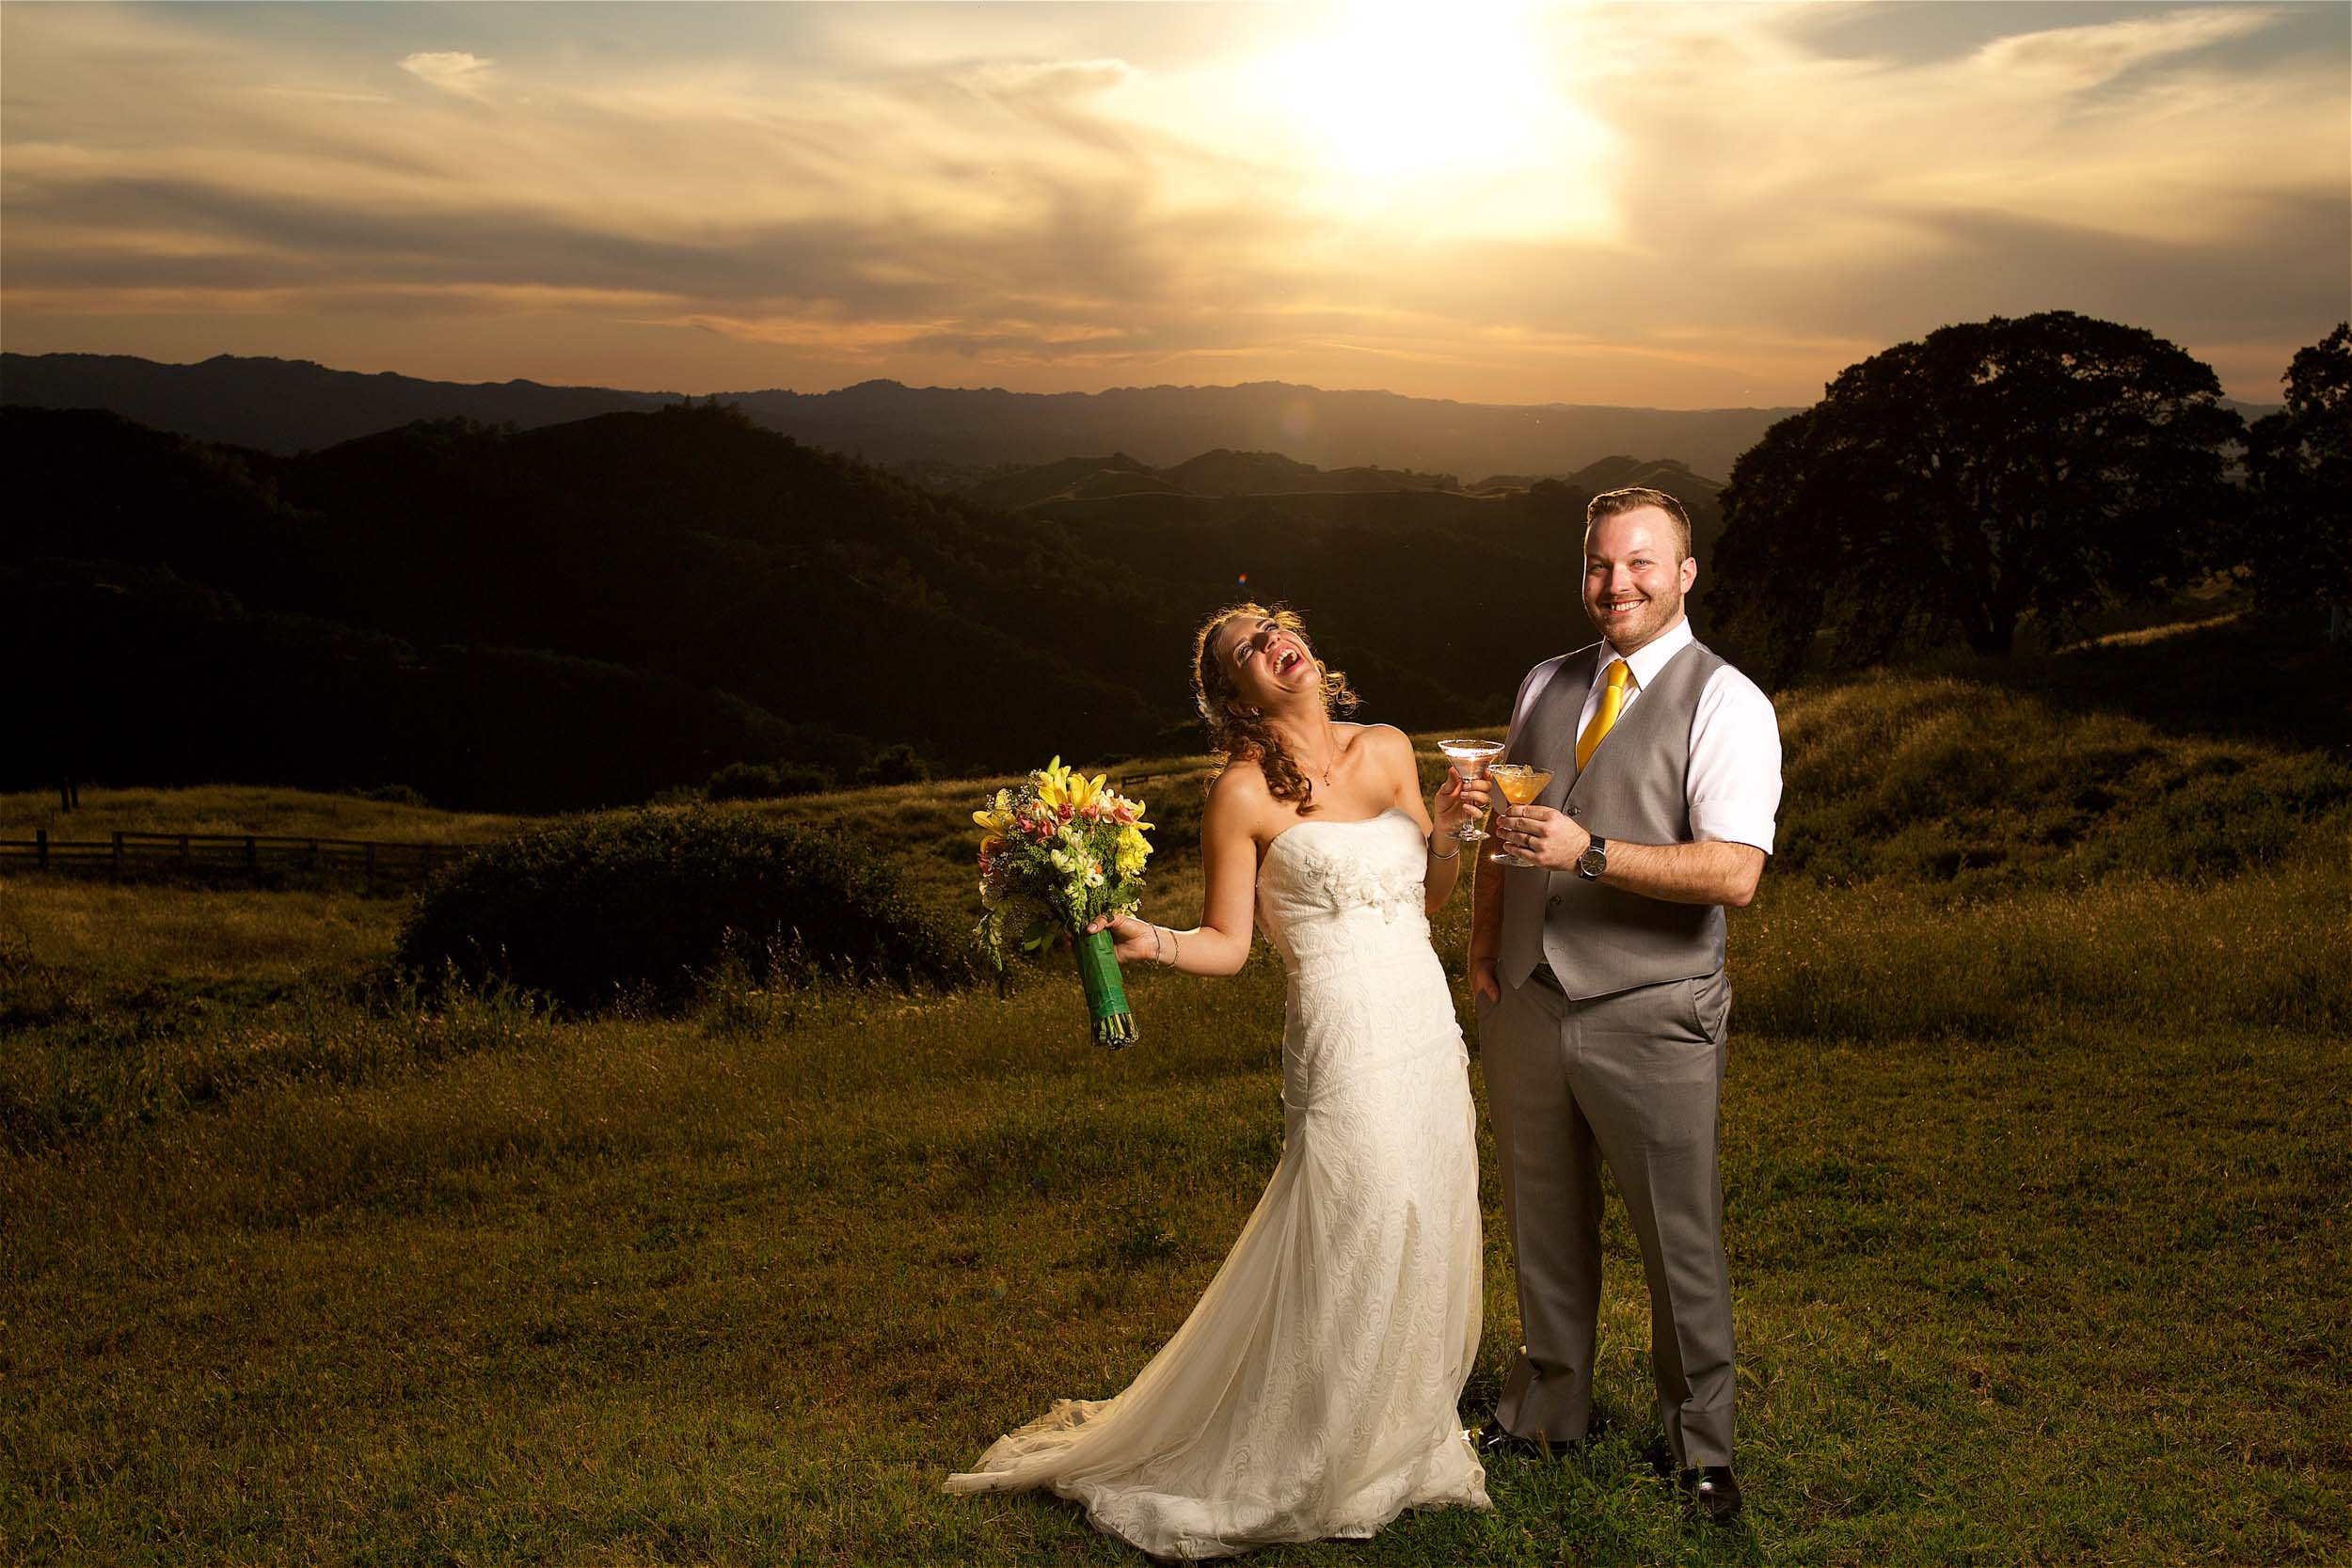 Bride and Groom drinking champagne at their wedding at Diablo Valley Ranch in Walnut Creek